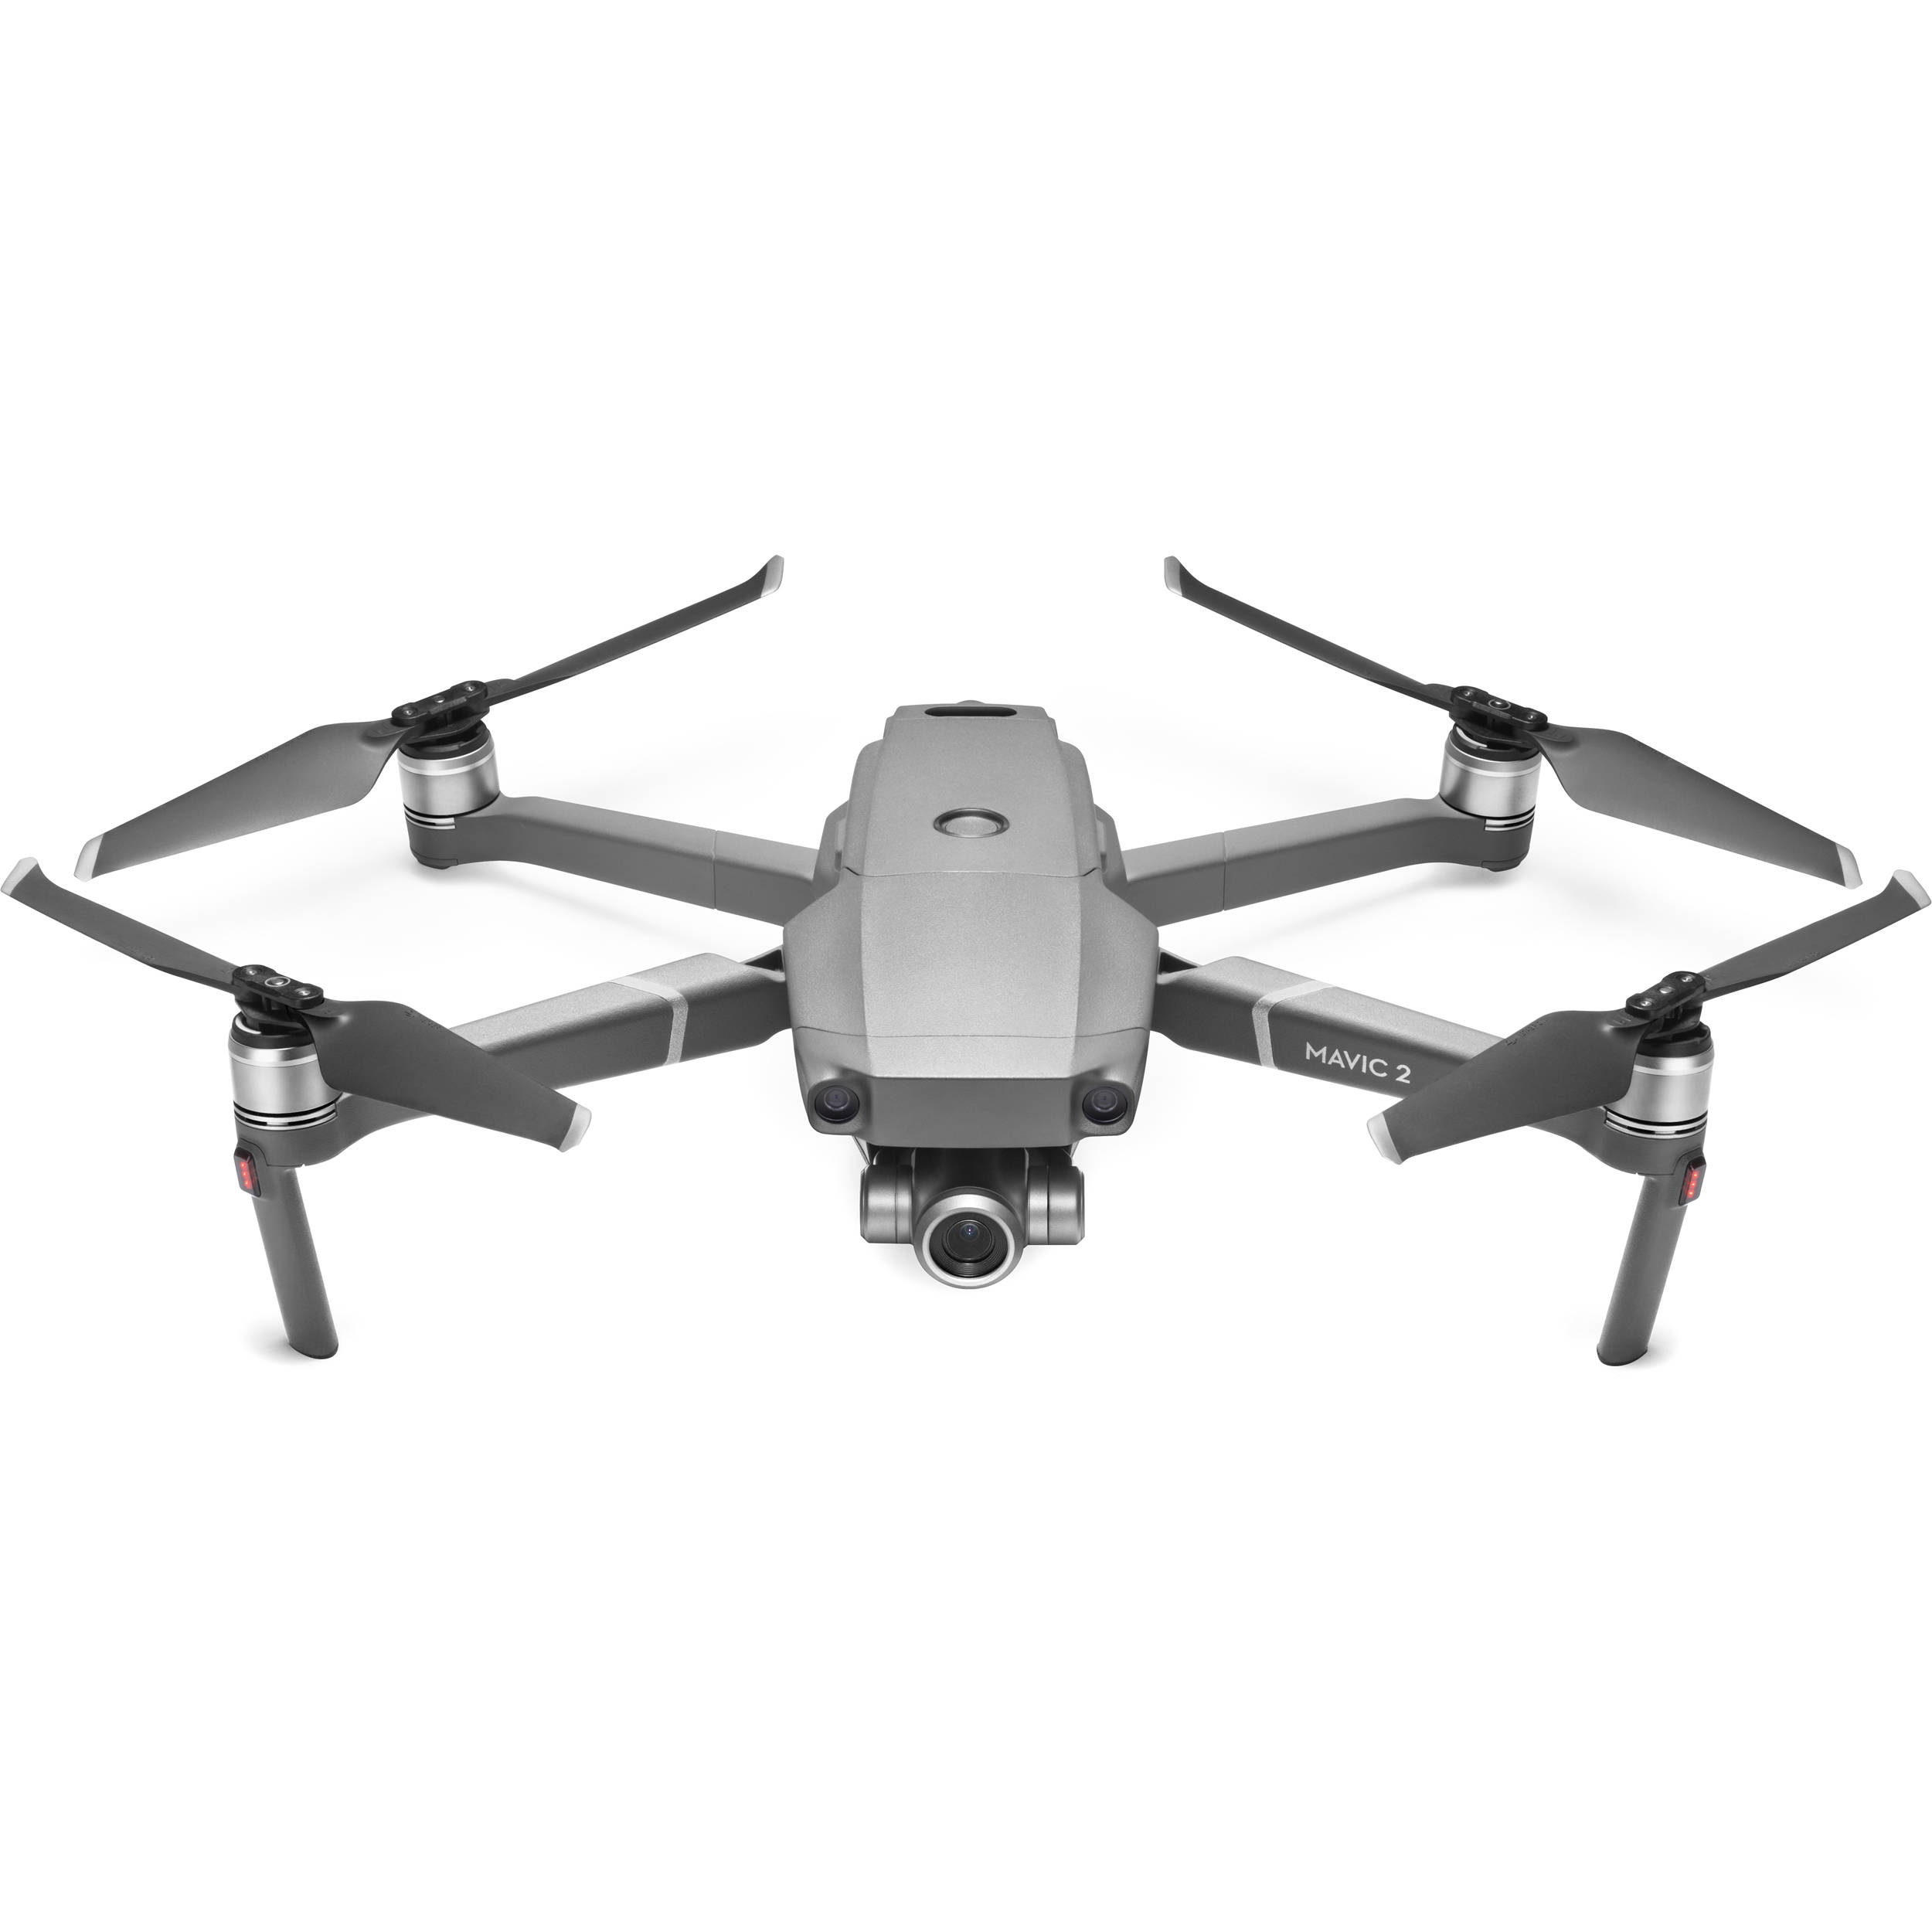 MANUALI DJI MAVIC 2 ZOOM KIT ENAC